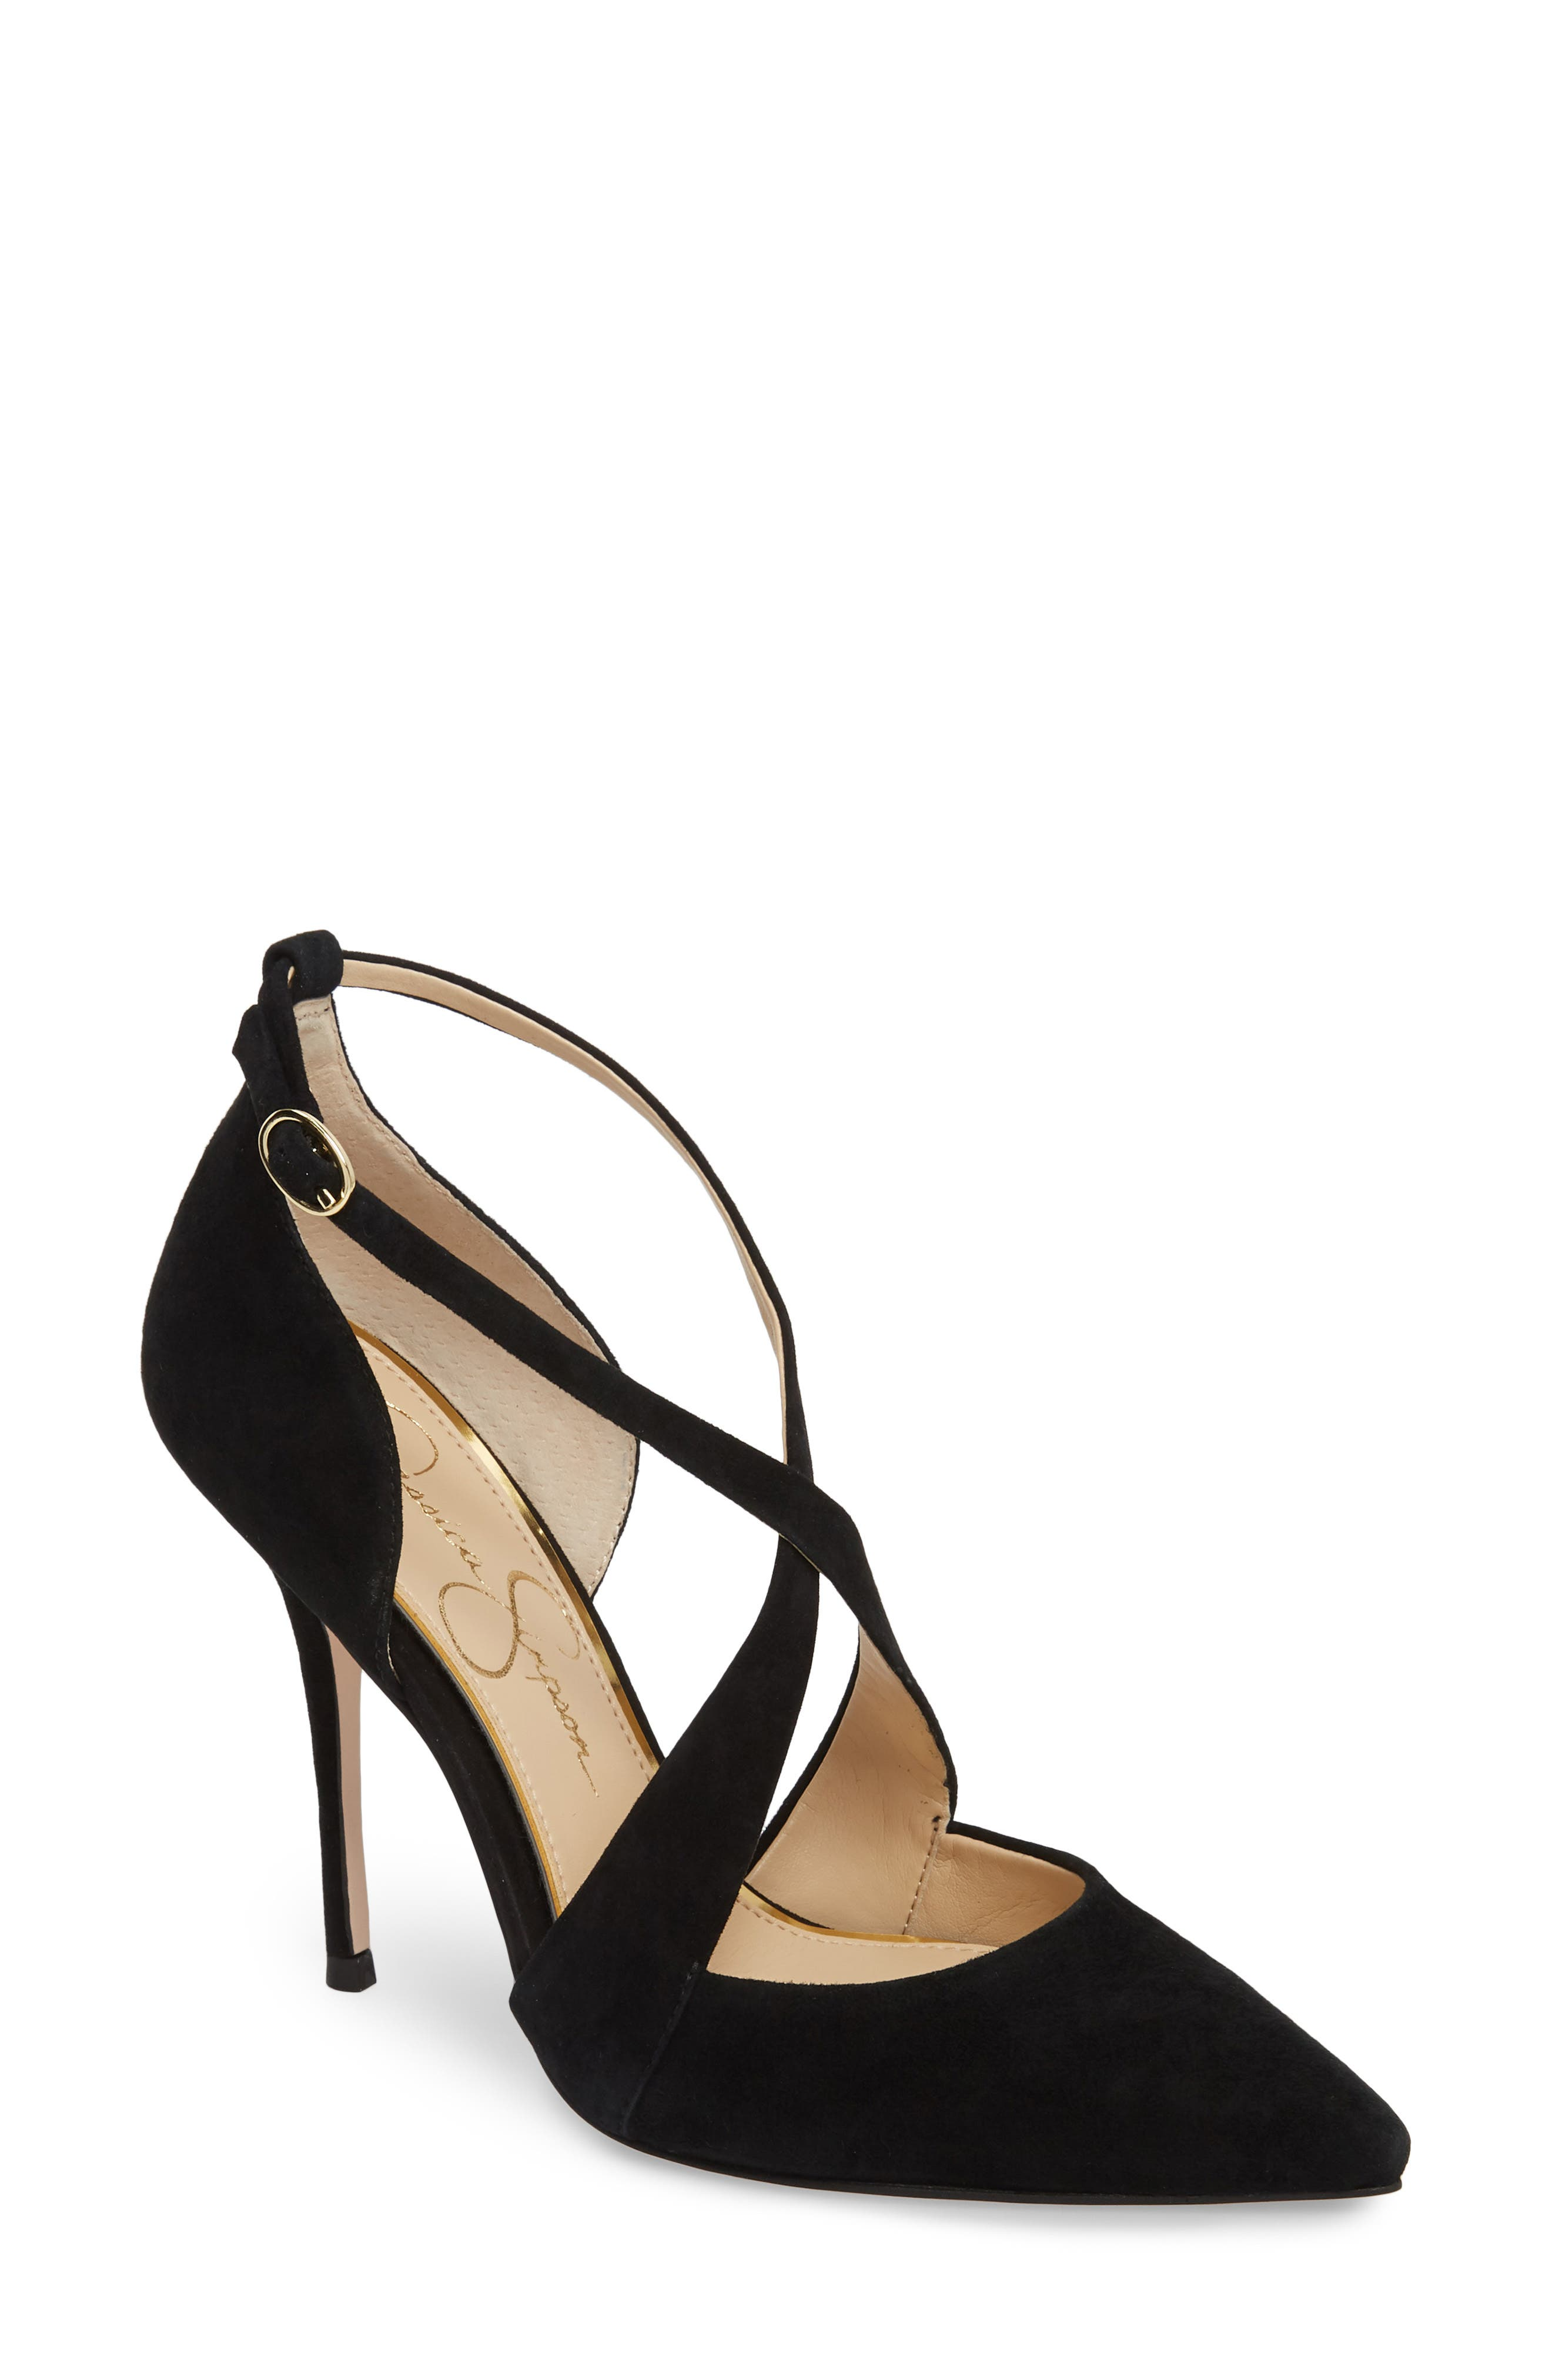 Wixen Cross Strap Pump,                         Main,                         color, BLACK